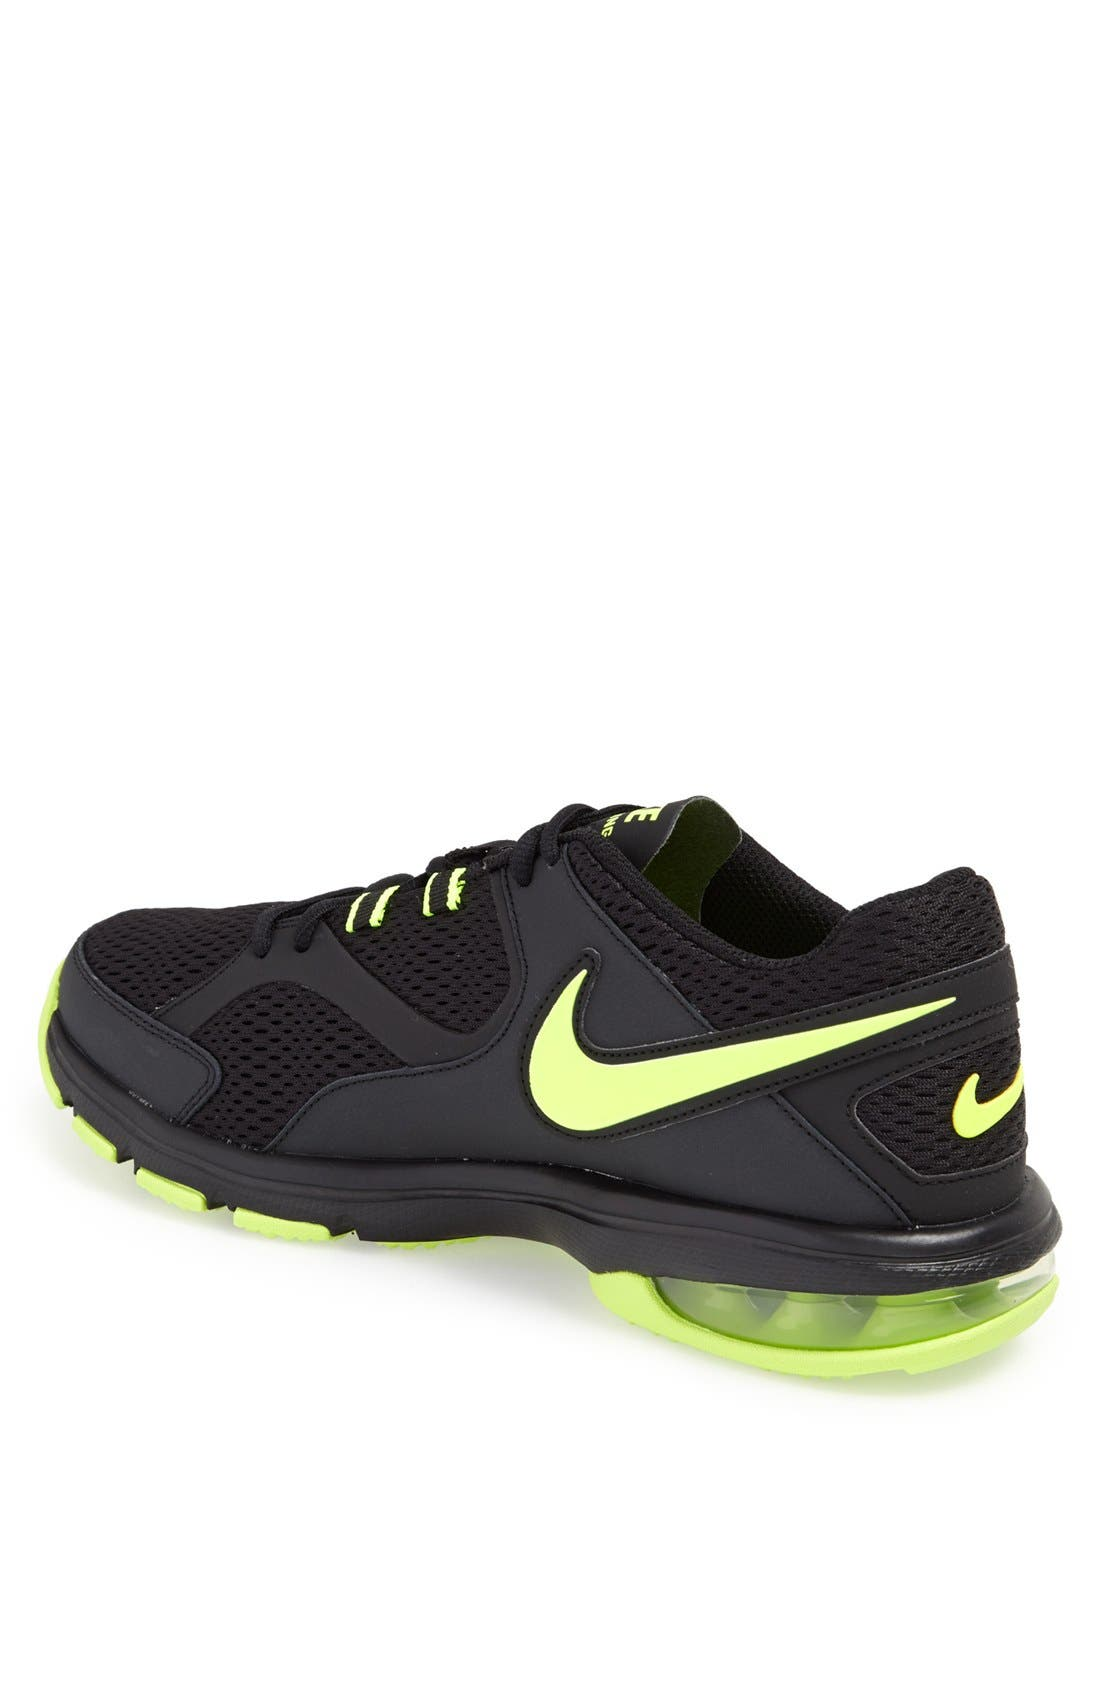 Alternate Image 2  - Nike 'Air Max Compete TR' Training Shoe (Men)